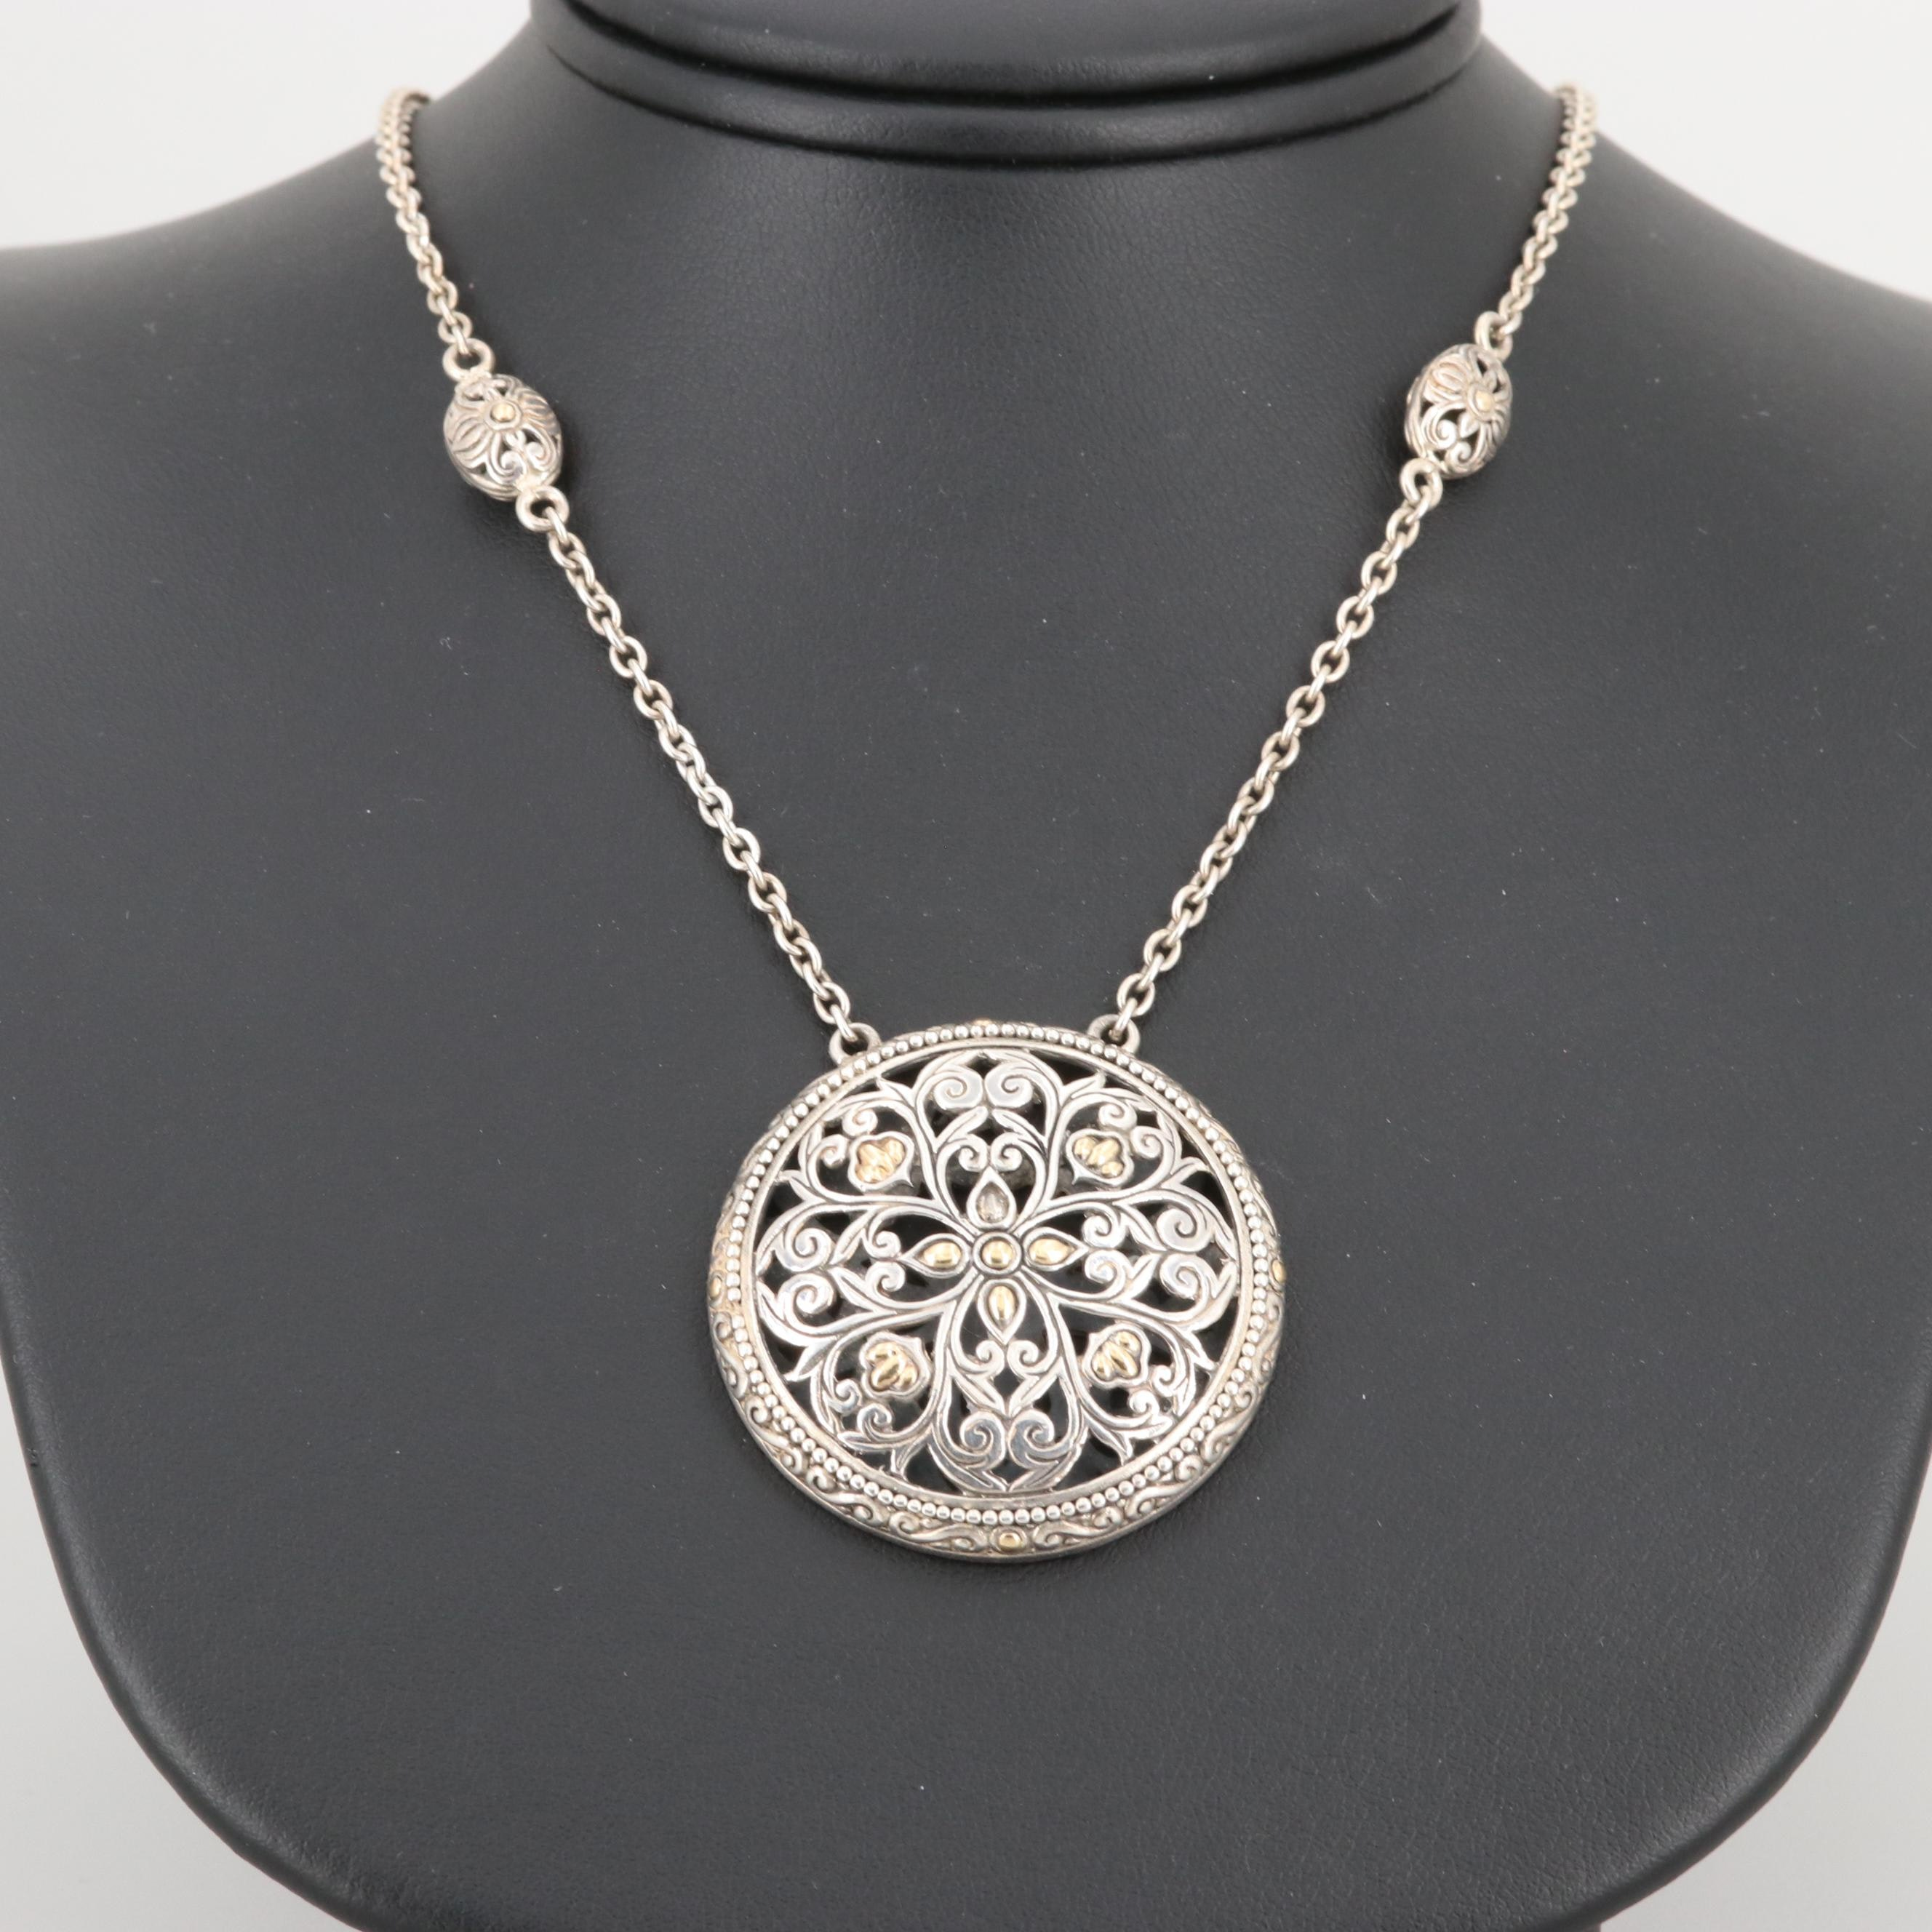 Robert Manse Sterling Silver Openwork Necklace with 18K Yellow Gold accents.